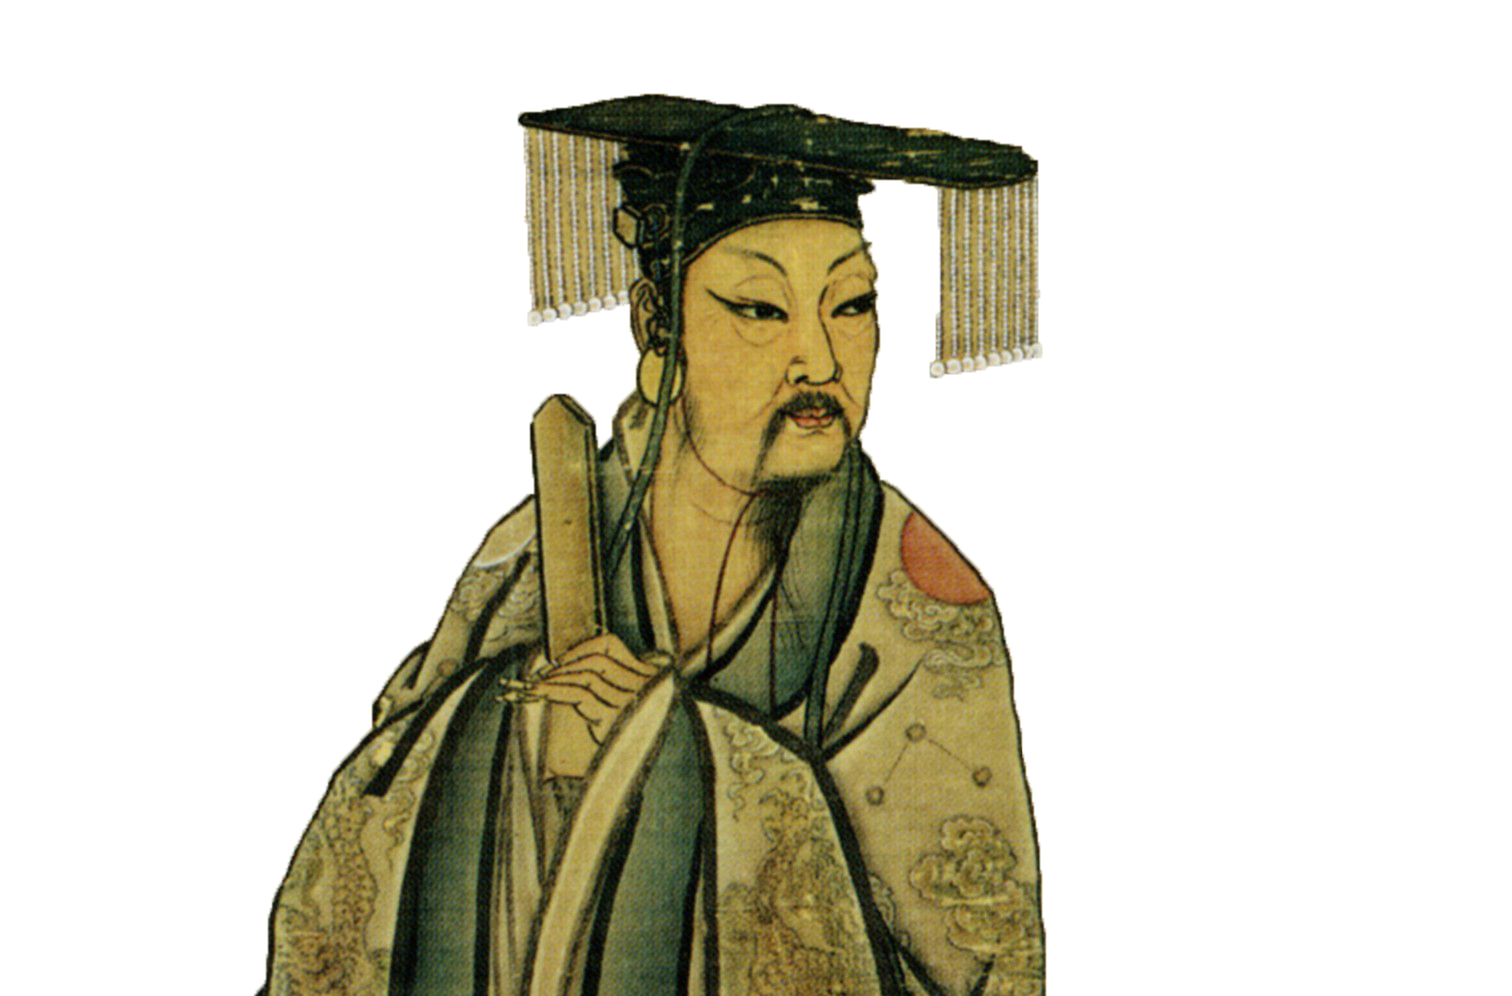 The 11 best Erlitou culture/Xia dynasty images on Pinterest Pictures of xia dynasty